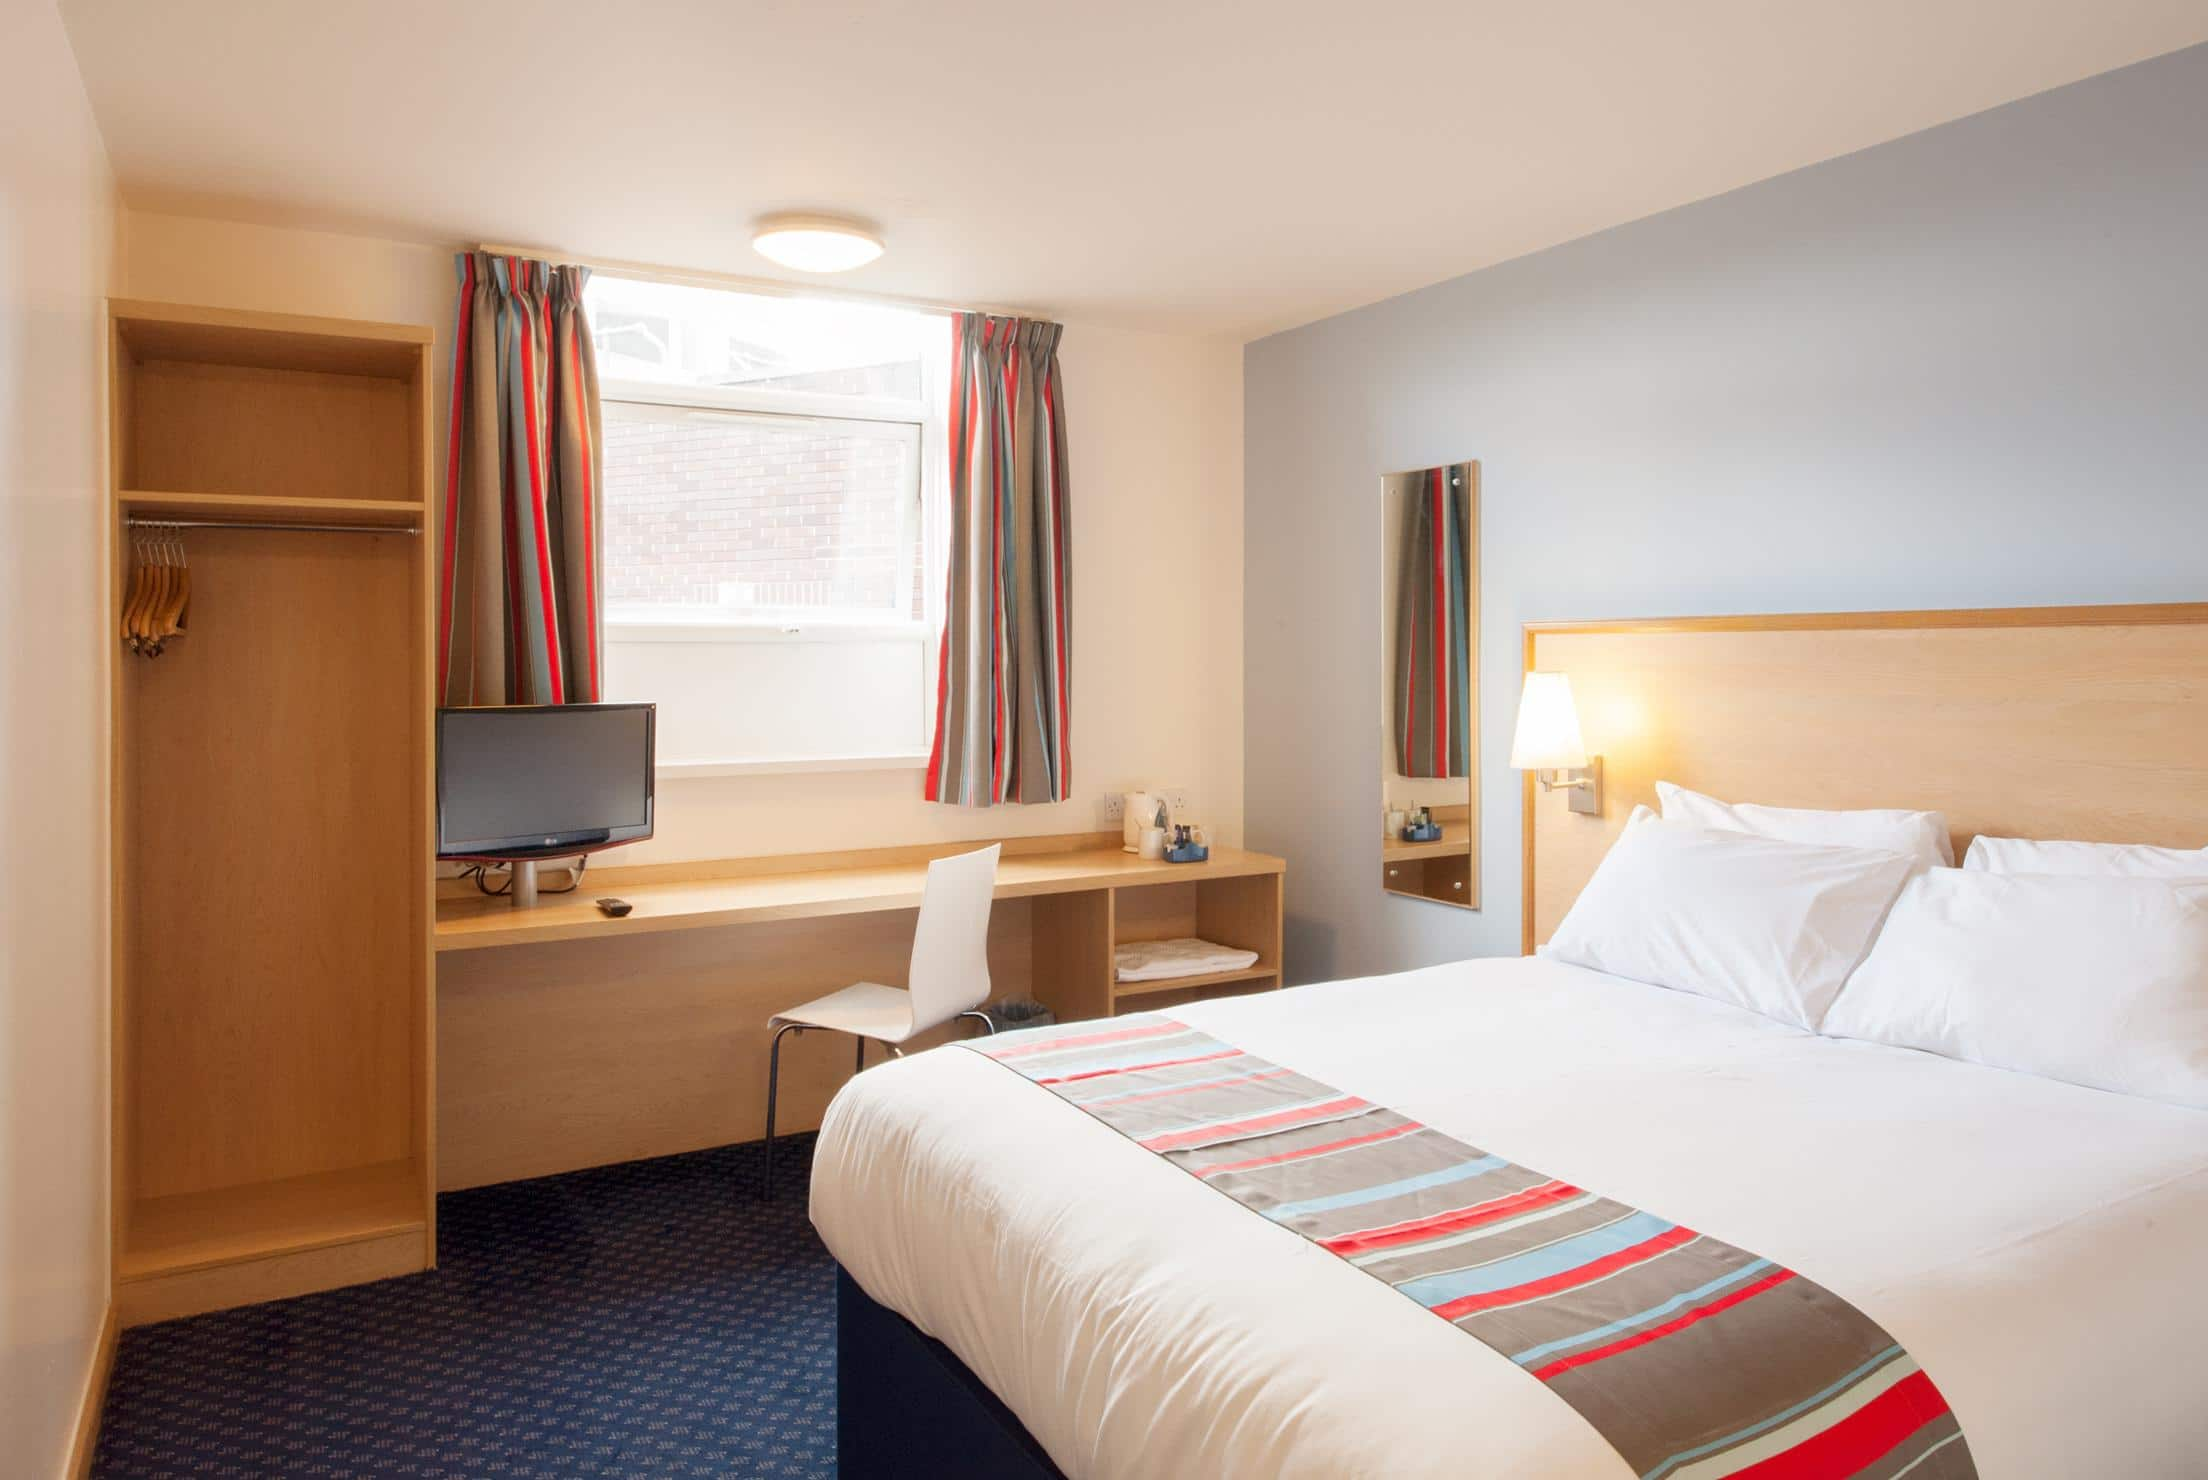 Hotel london cheap internet rates for kings cross hotels in london - Double Room